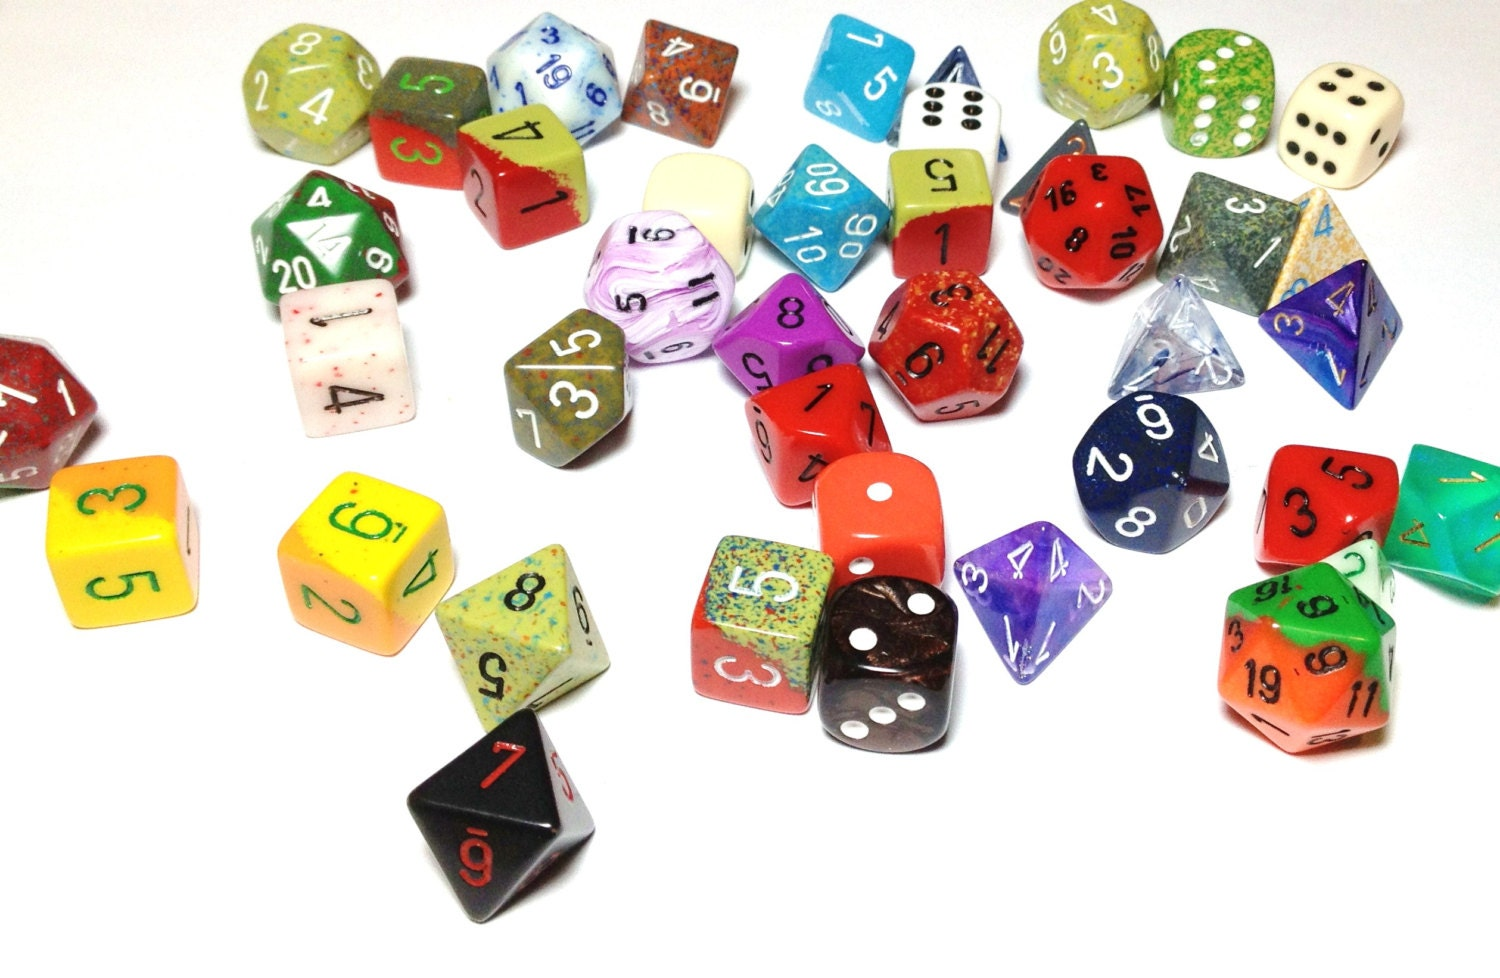 30 sided die vs 20 sided die neverwinter